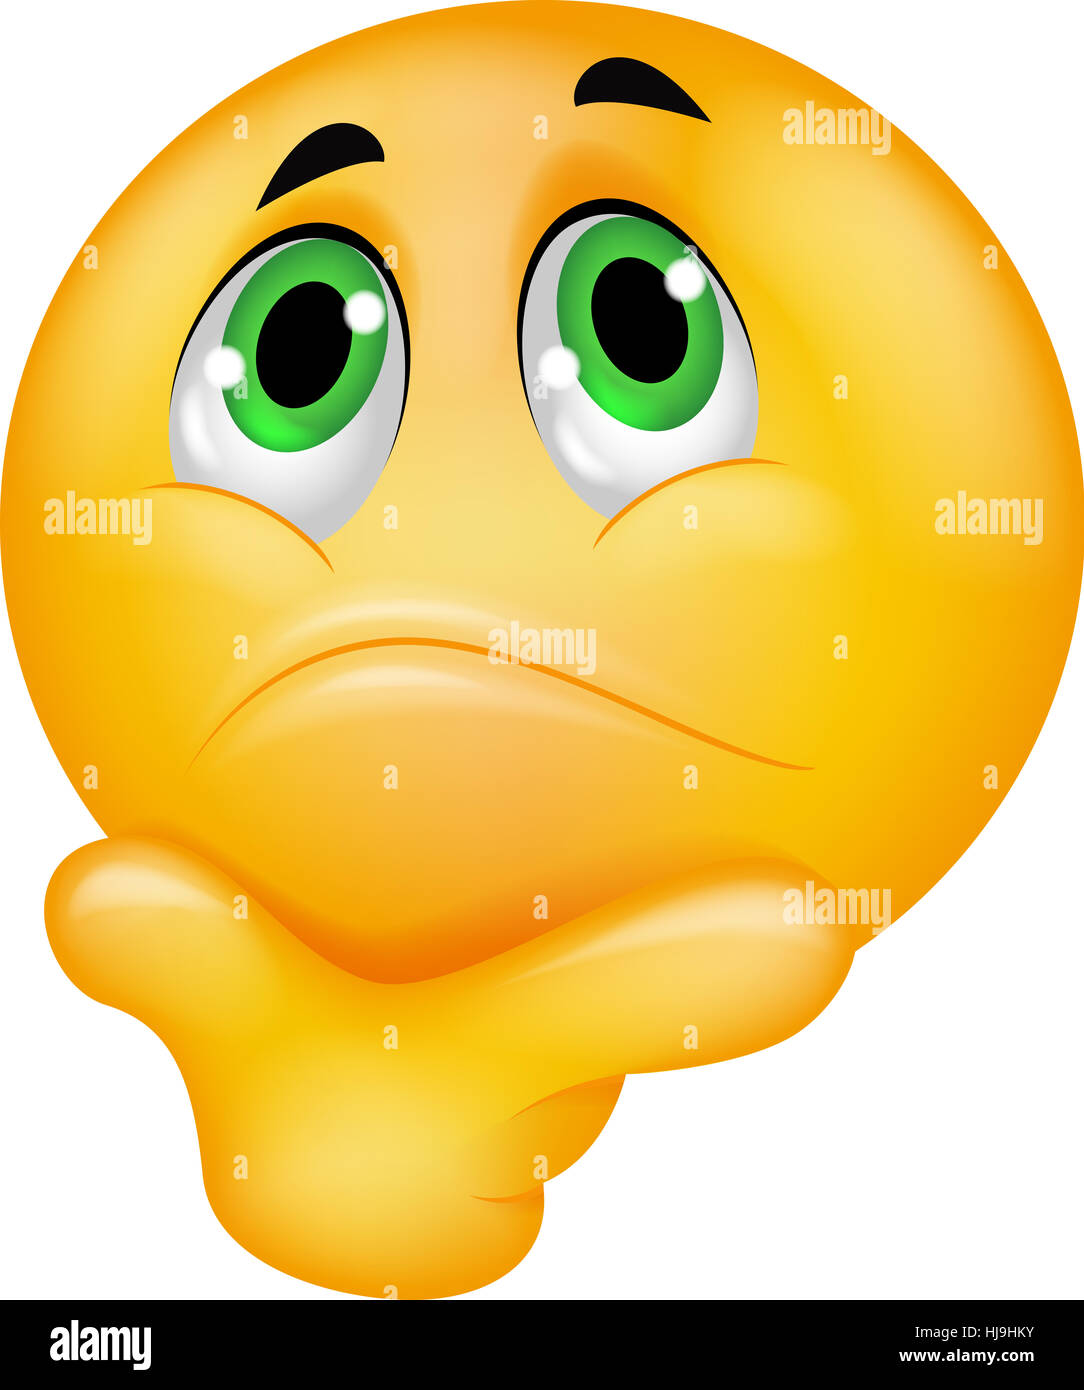 Funny smiley vector character thinking choice between good angel face serious icon cartoon thinking emotion pictogram symbol biocorpaavc